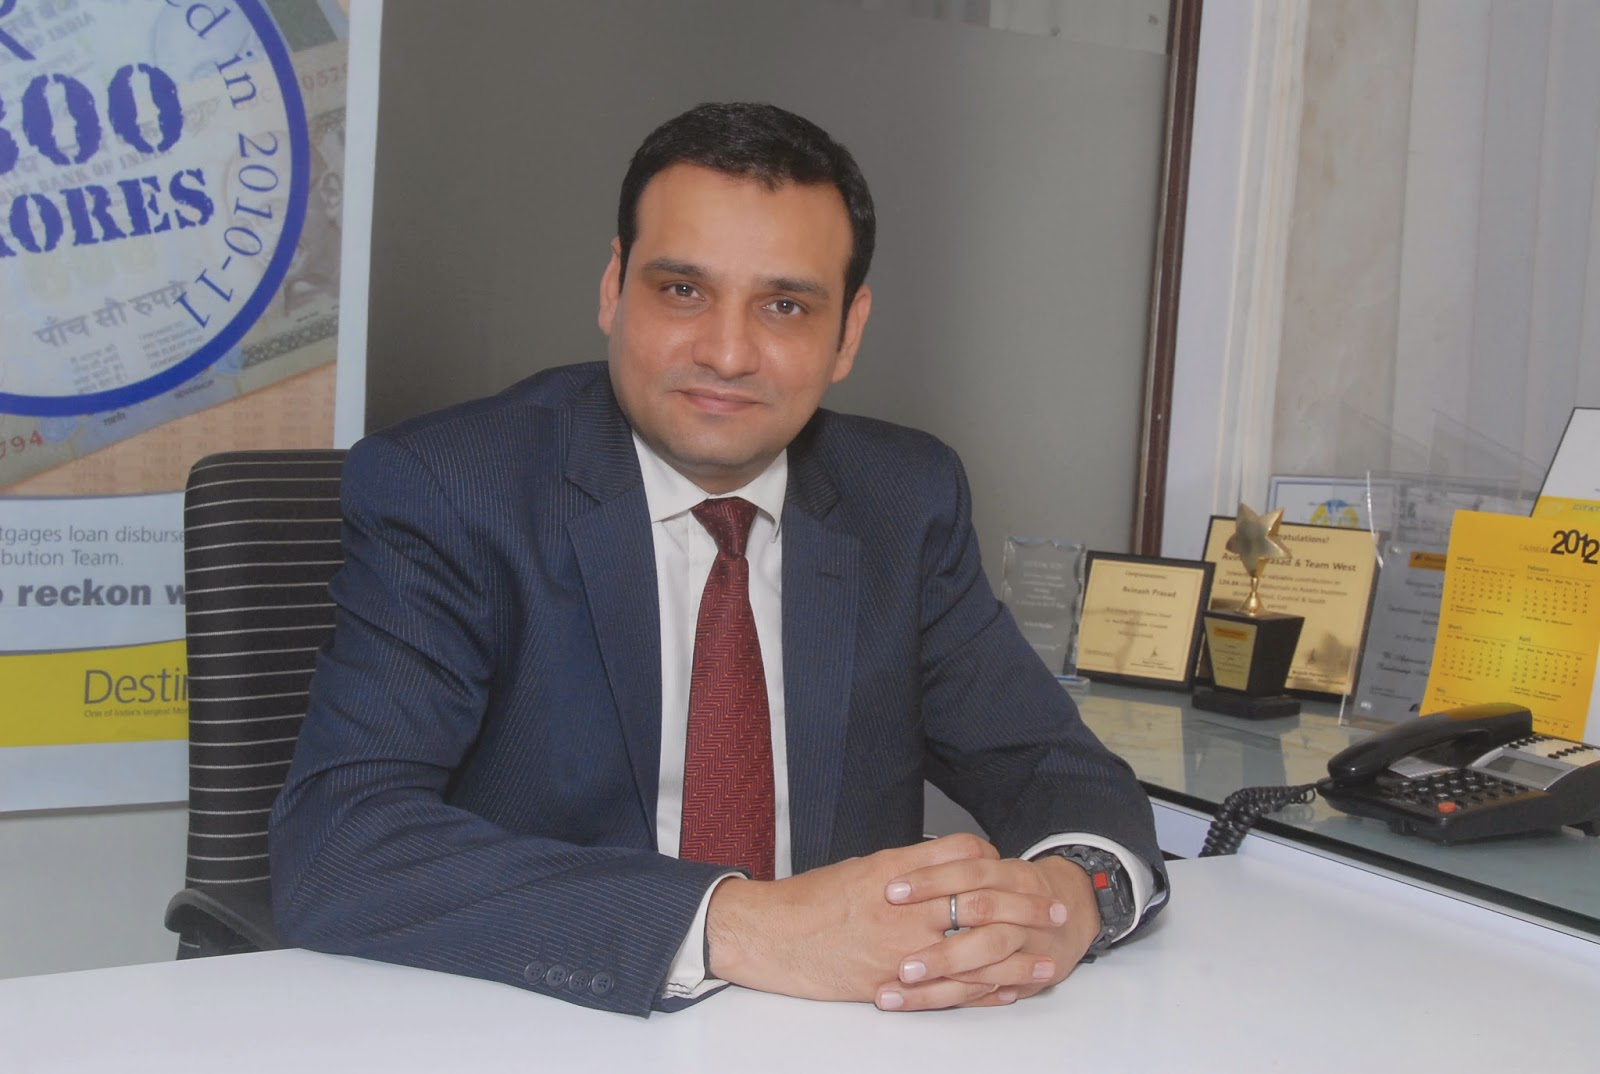 Brijesh Parnami, CEO, Destimoney Advisors speaks on Union Budget